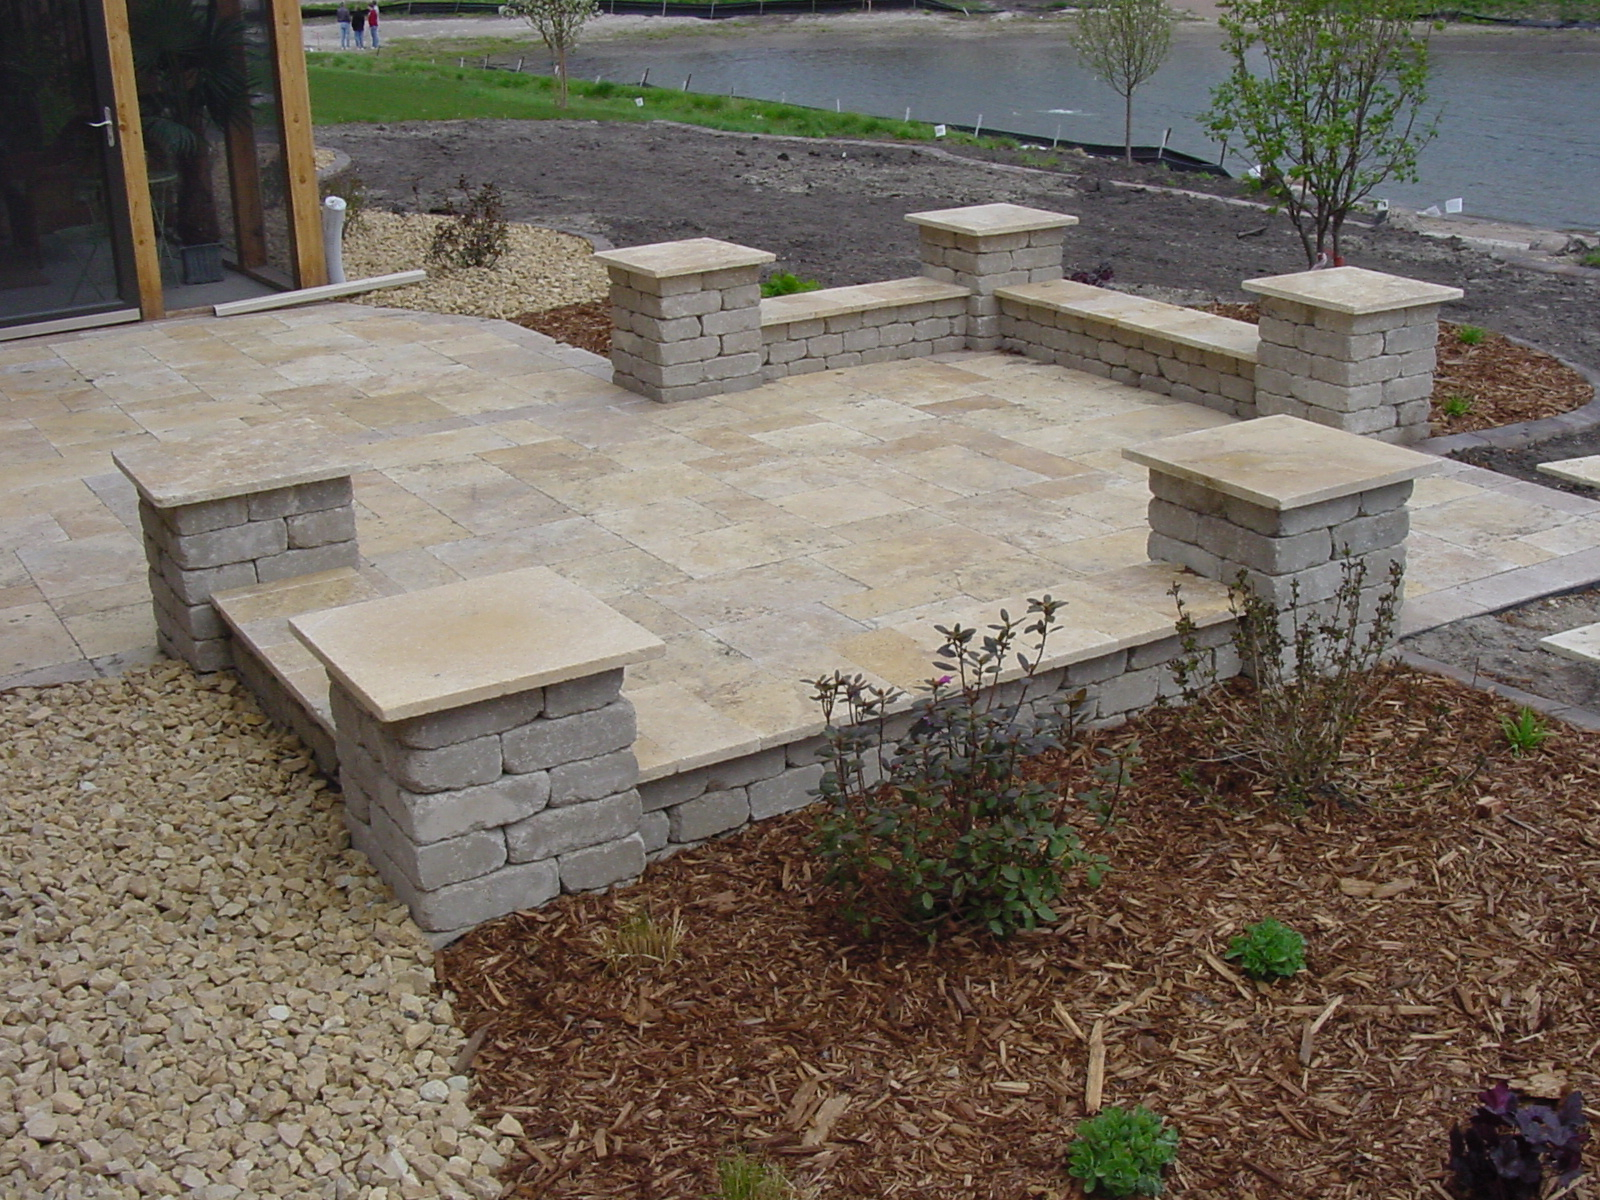 Merveilleux Brick Stone Patio Designs Home Design Ideas For Proportions 1600 X 1200